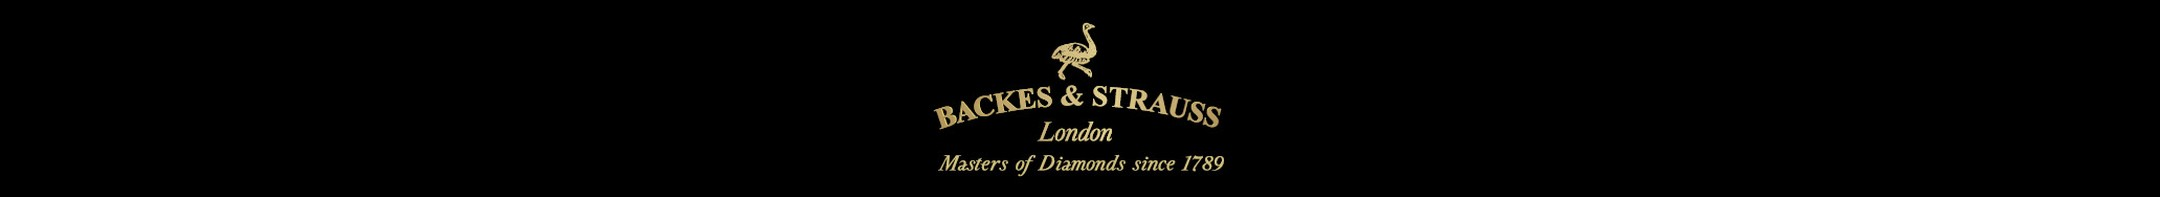 Backes & Strauss - Top Banner Oct2013